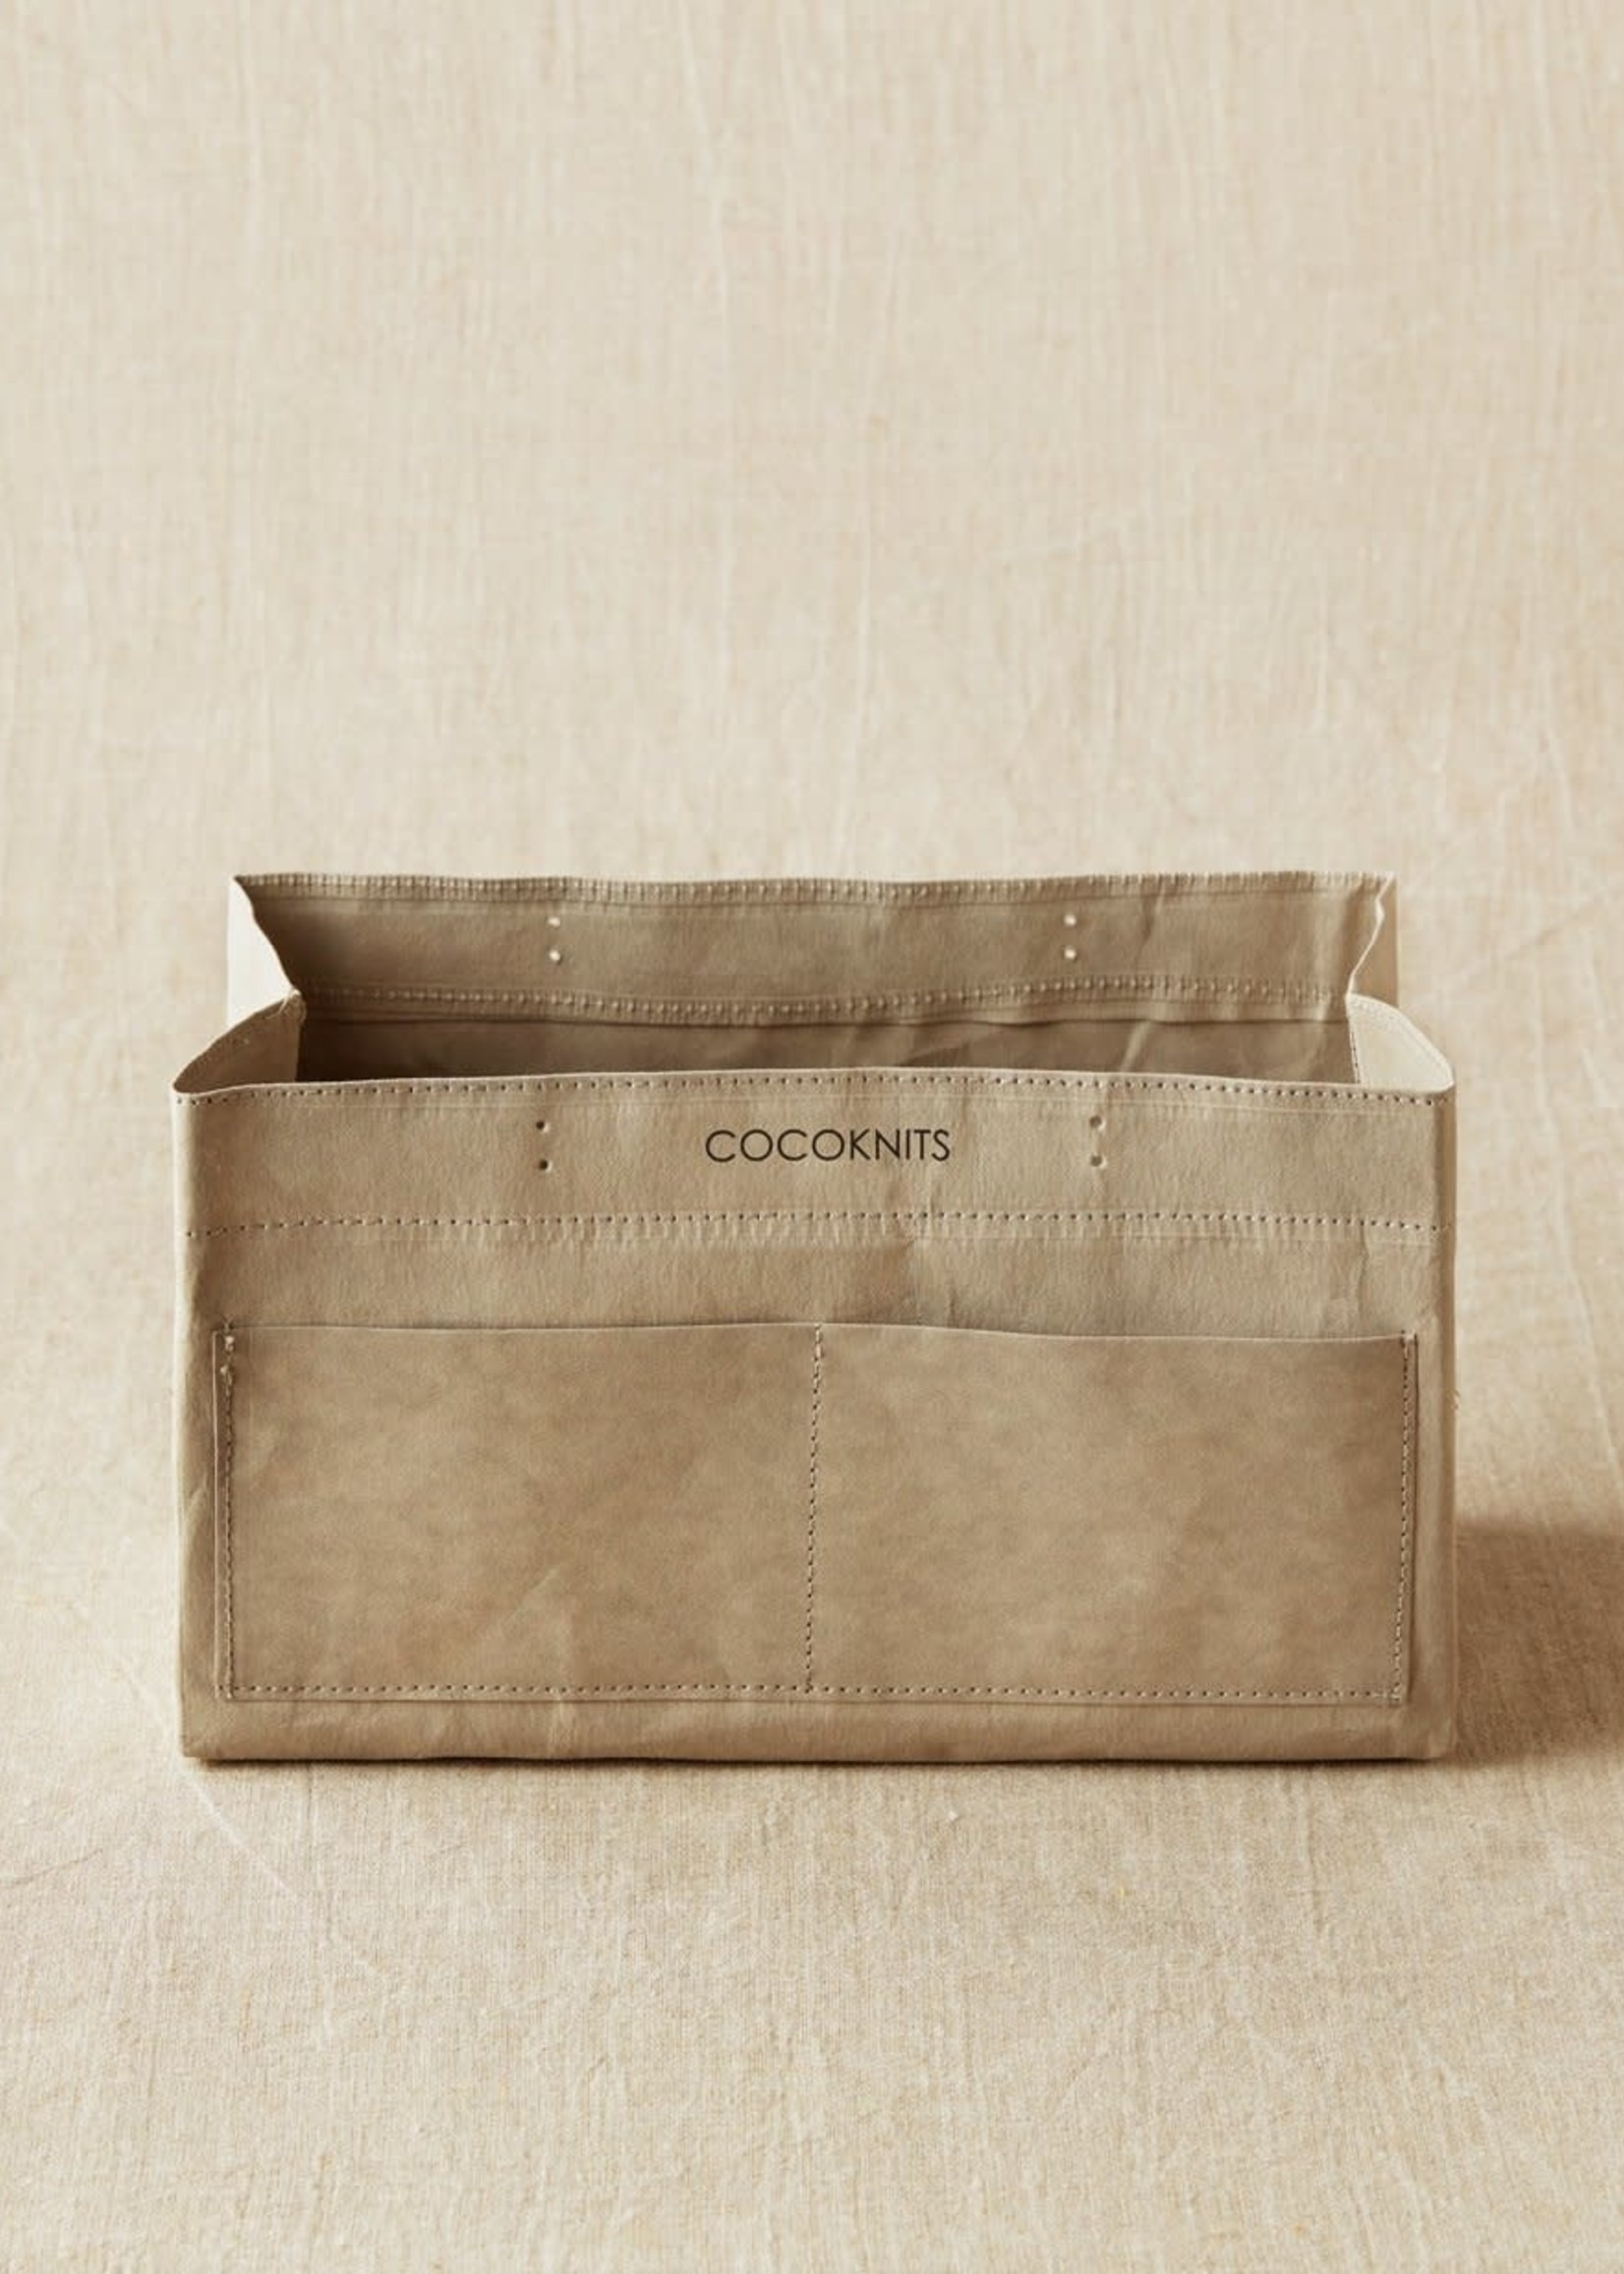 Cocoknits Cocoknits Craft Caddy - Gray